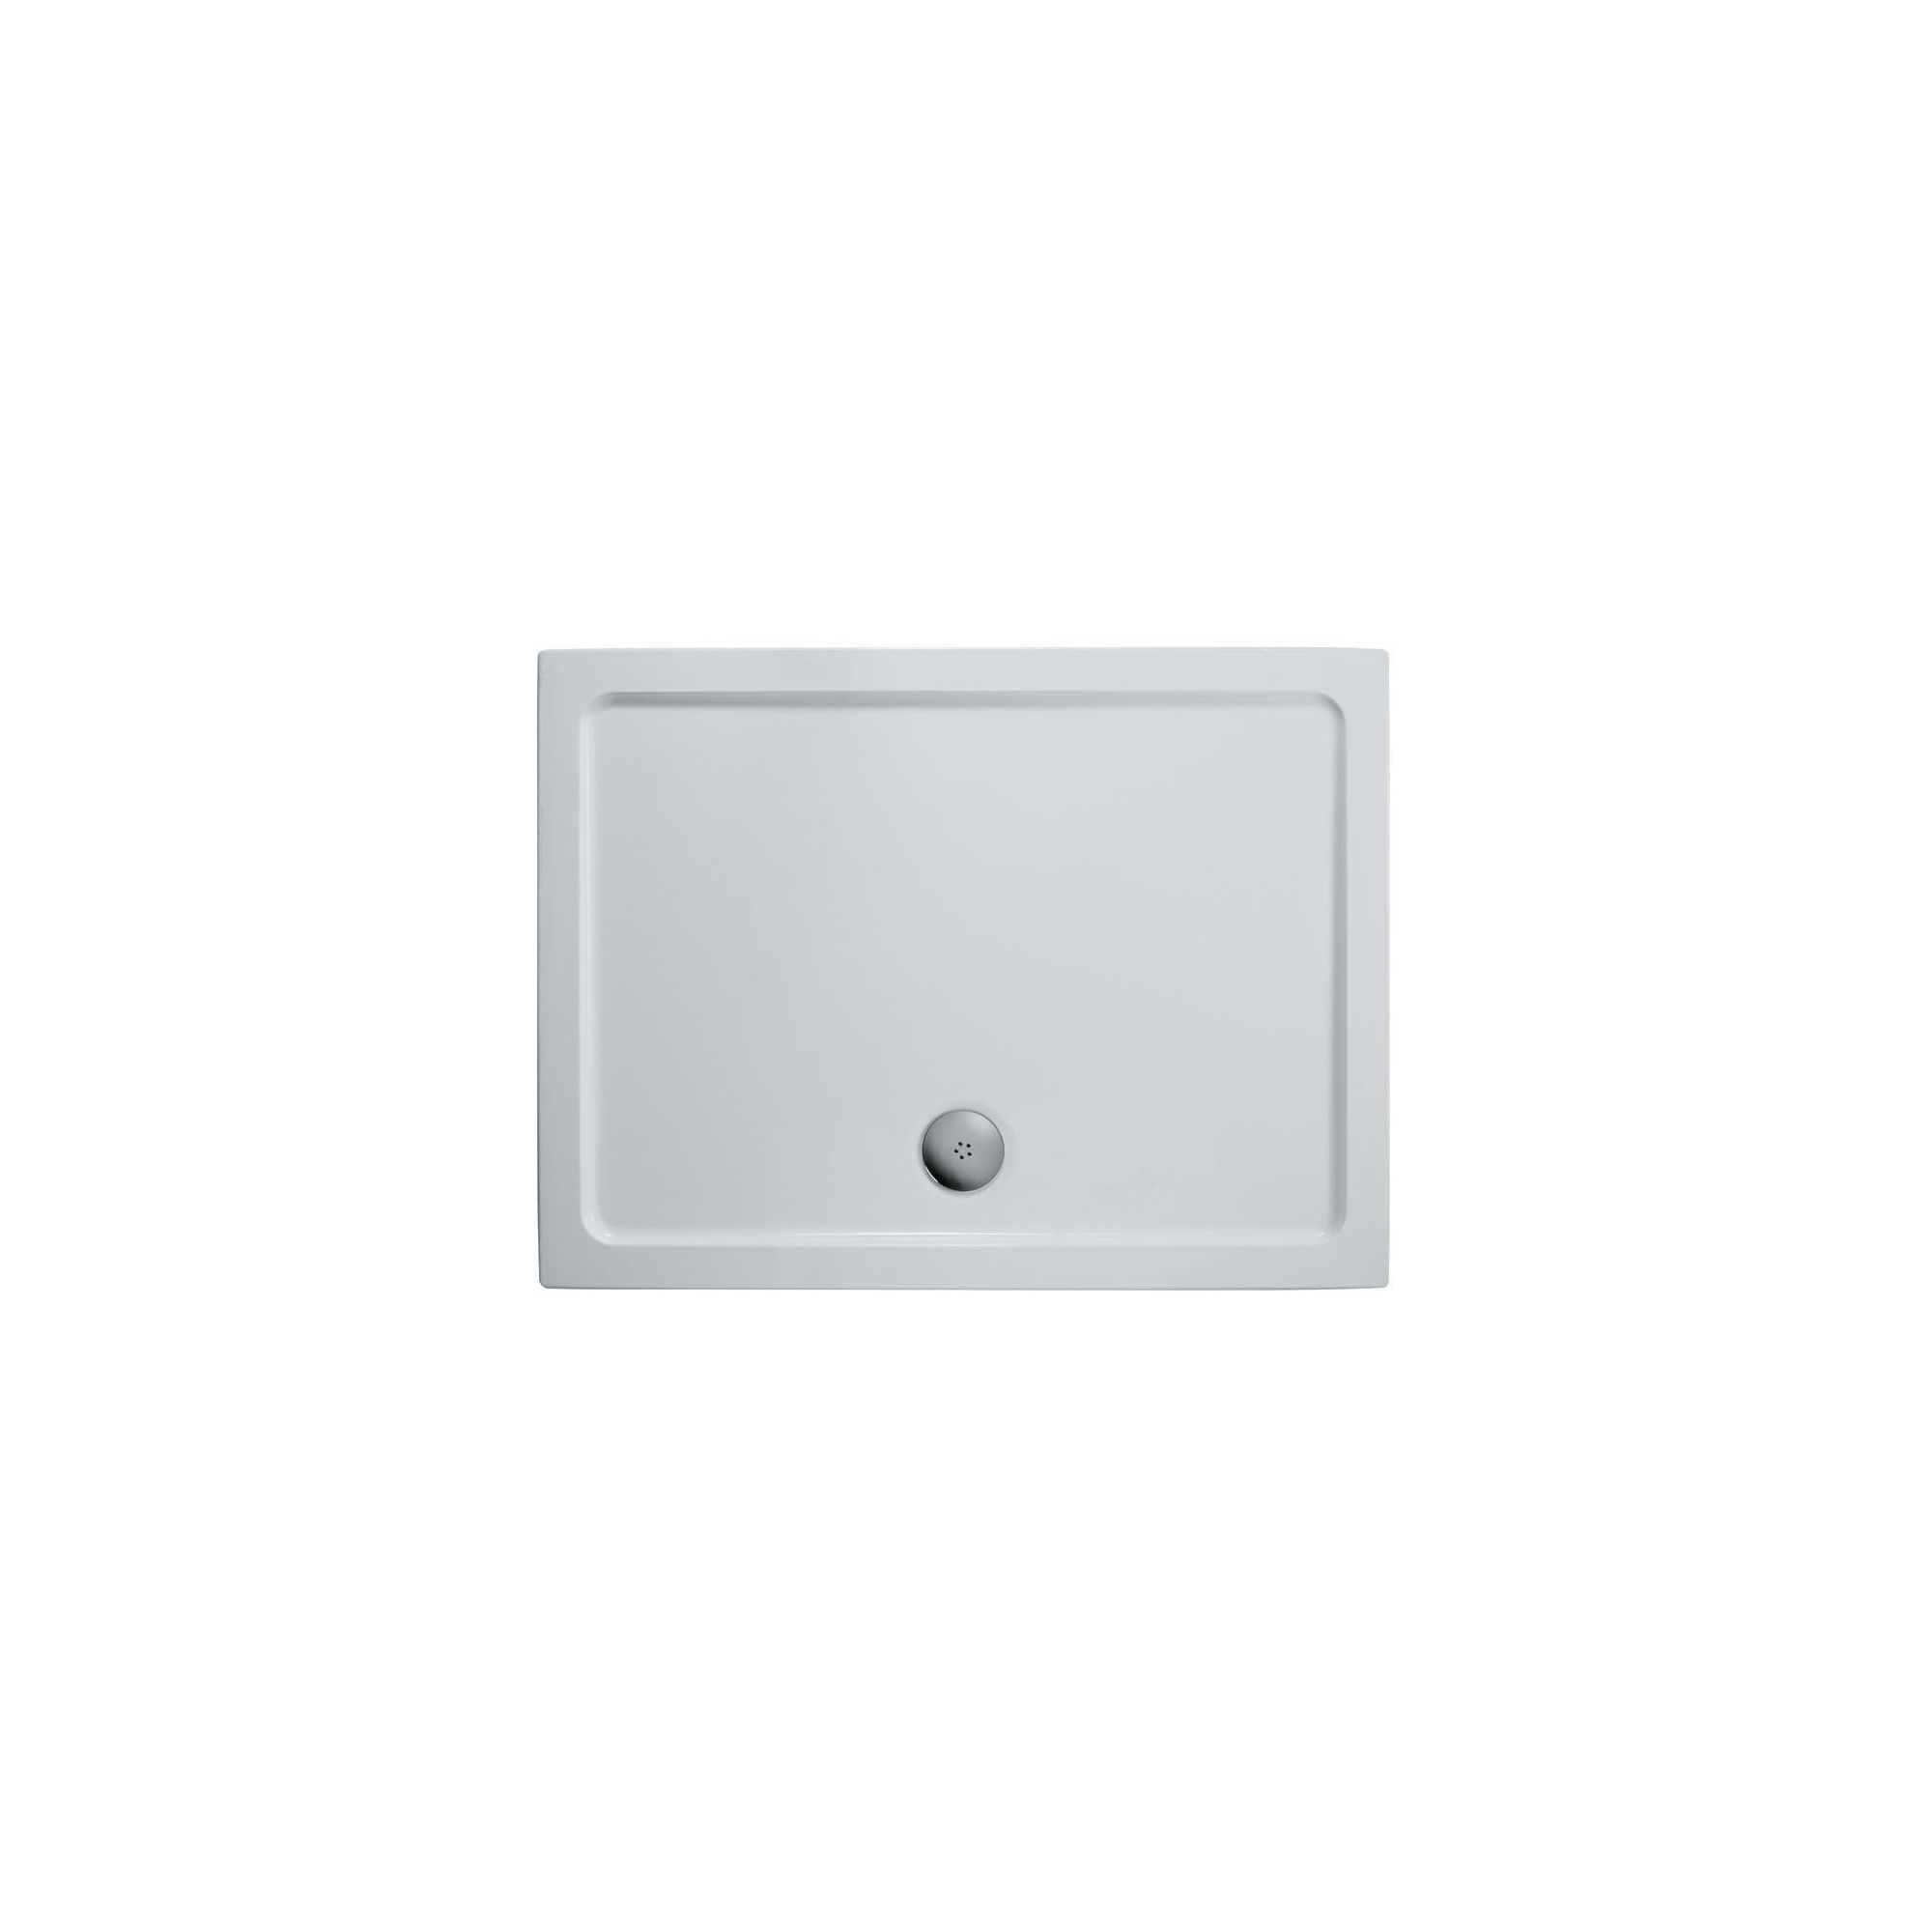 Ideal Standard Kubo Pivot Door Alcove Shower Enclosure, 900mm x 760mm, Bright Silver Frame, Low Profile Tray at Tesco Direct